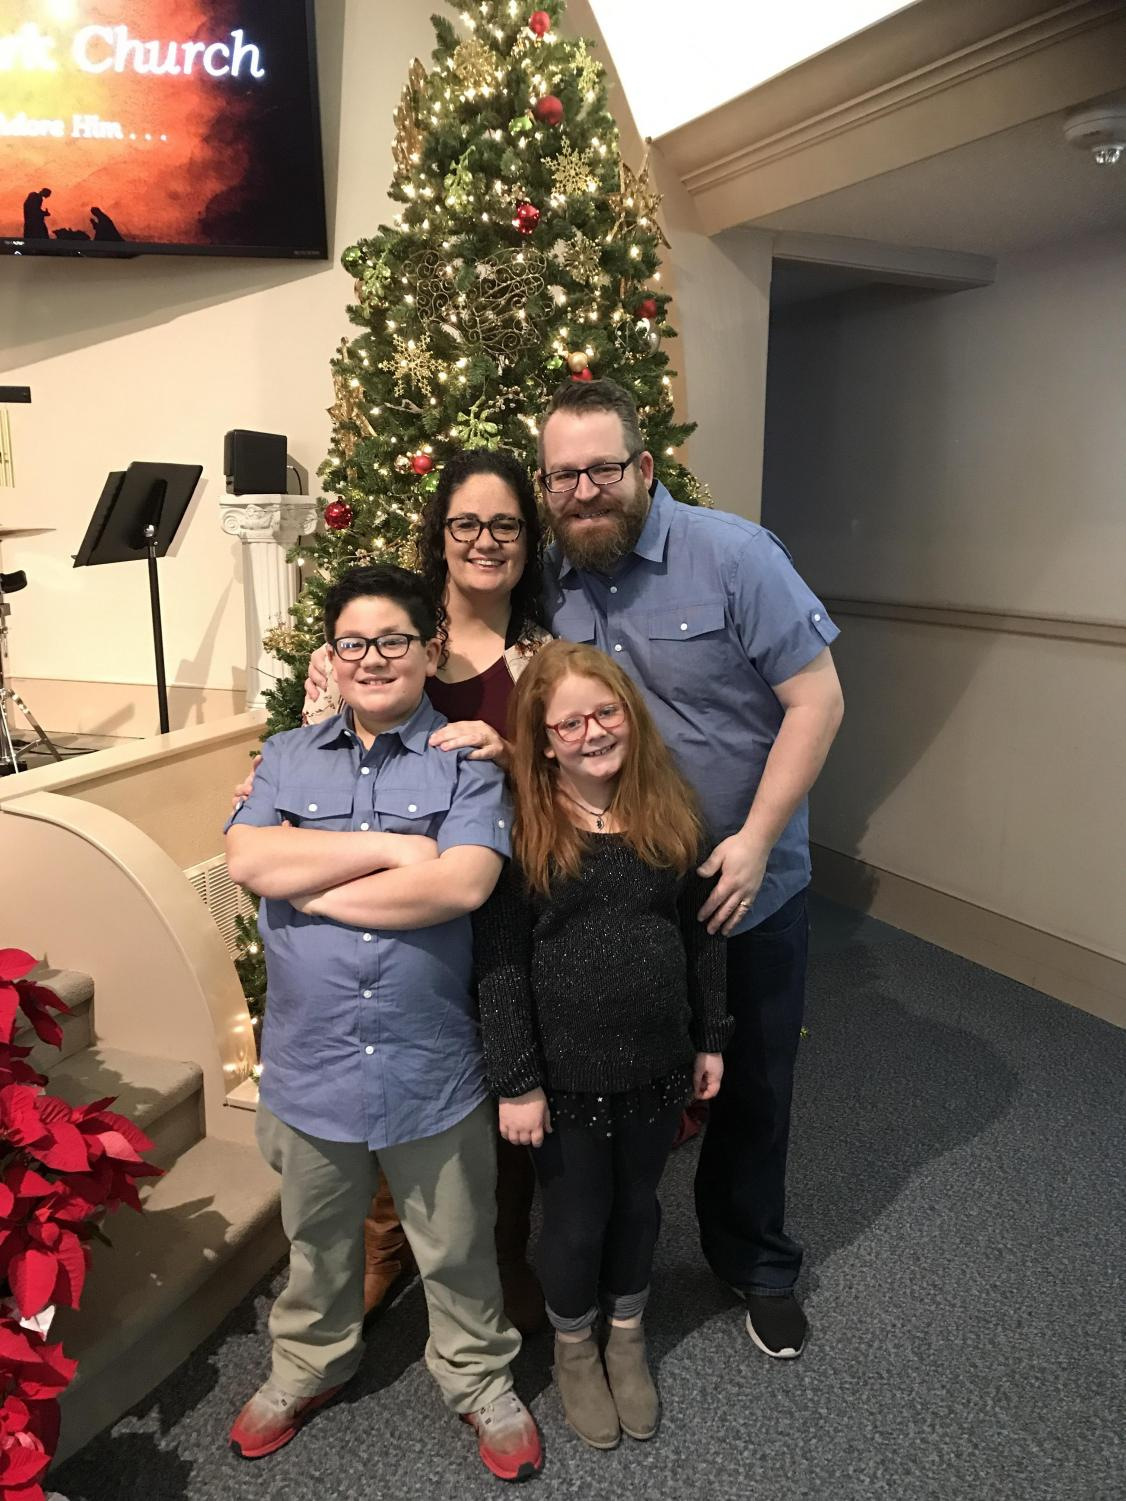 Choir directors Carla and Jared Hardy with their children Jakob and Lily.